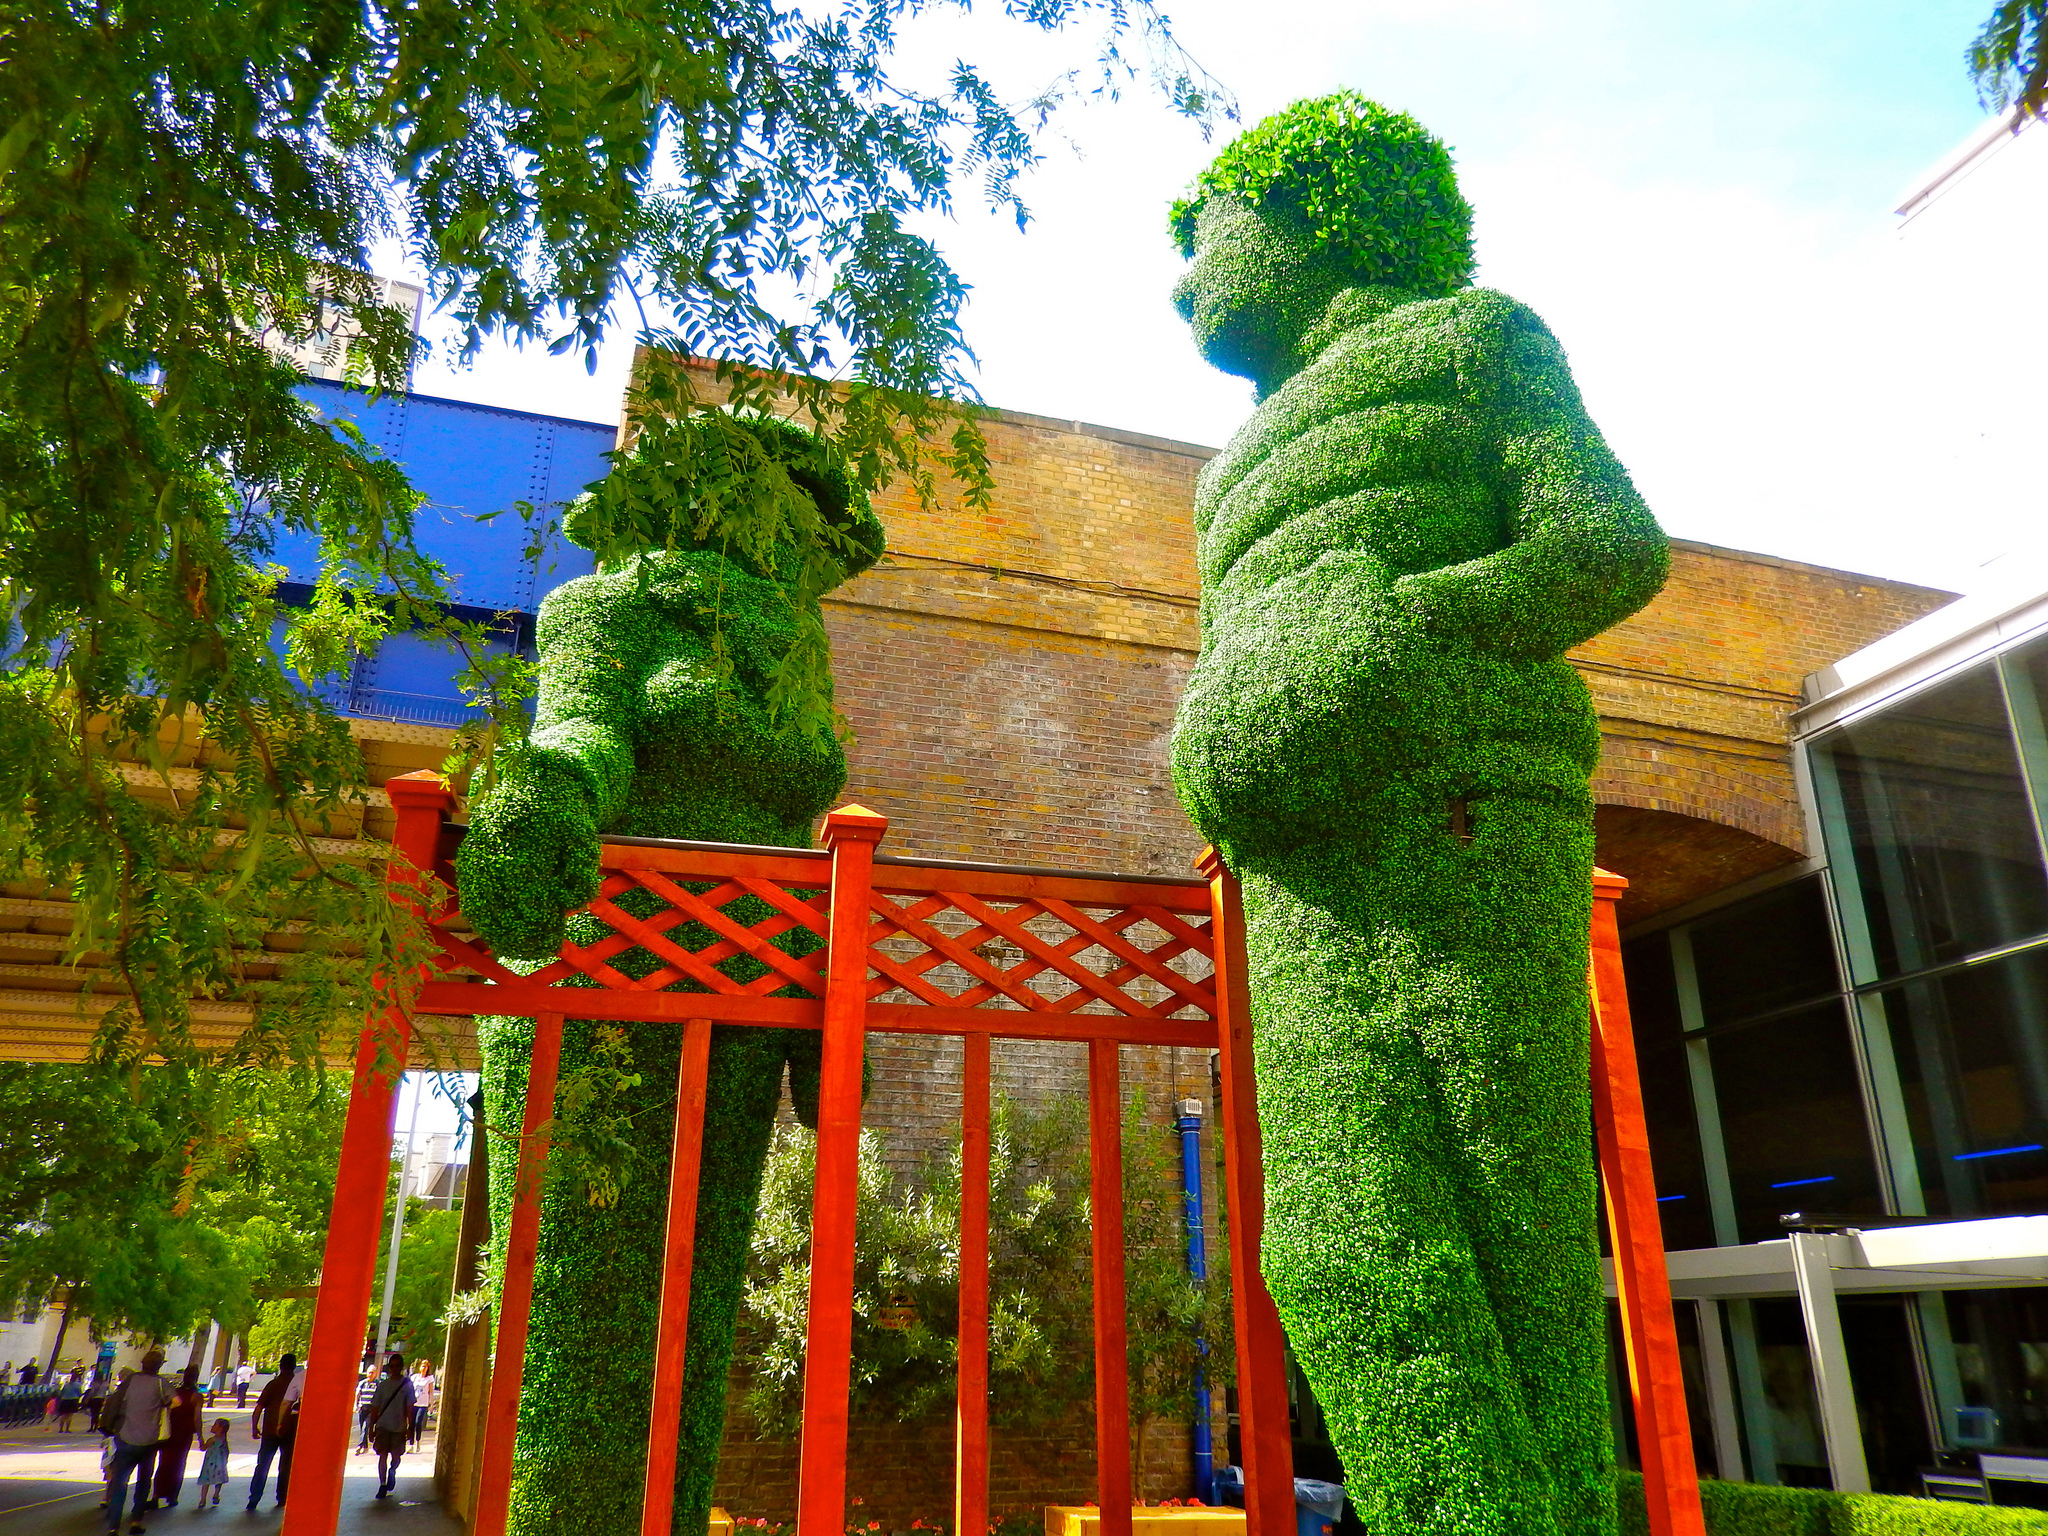 """Southbank Centre - Neighbourhood Festival"" by Sarah_Ackerman via Flickr Creative Commons"